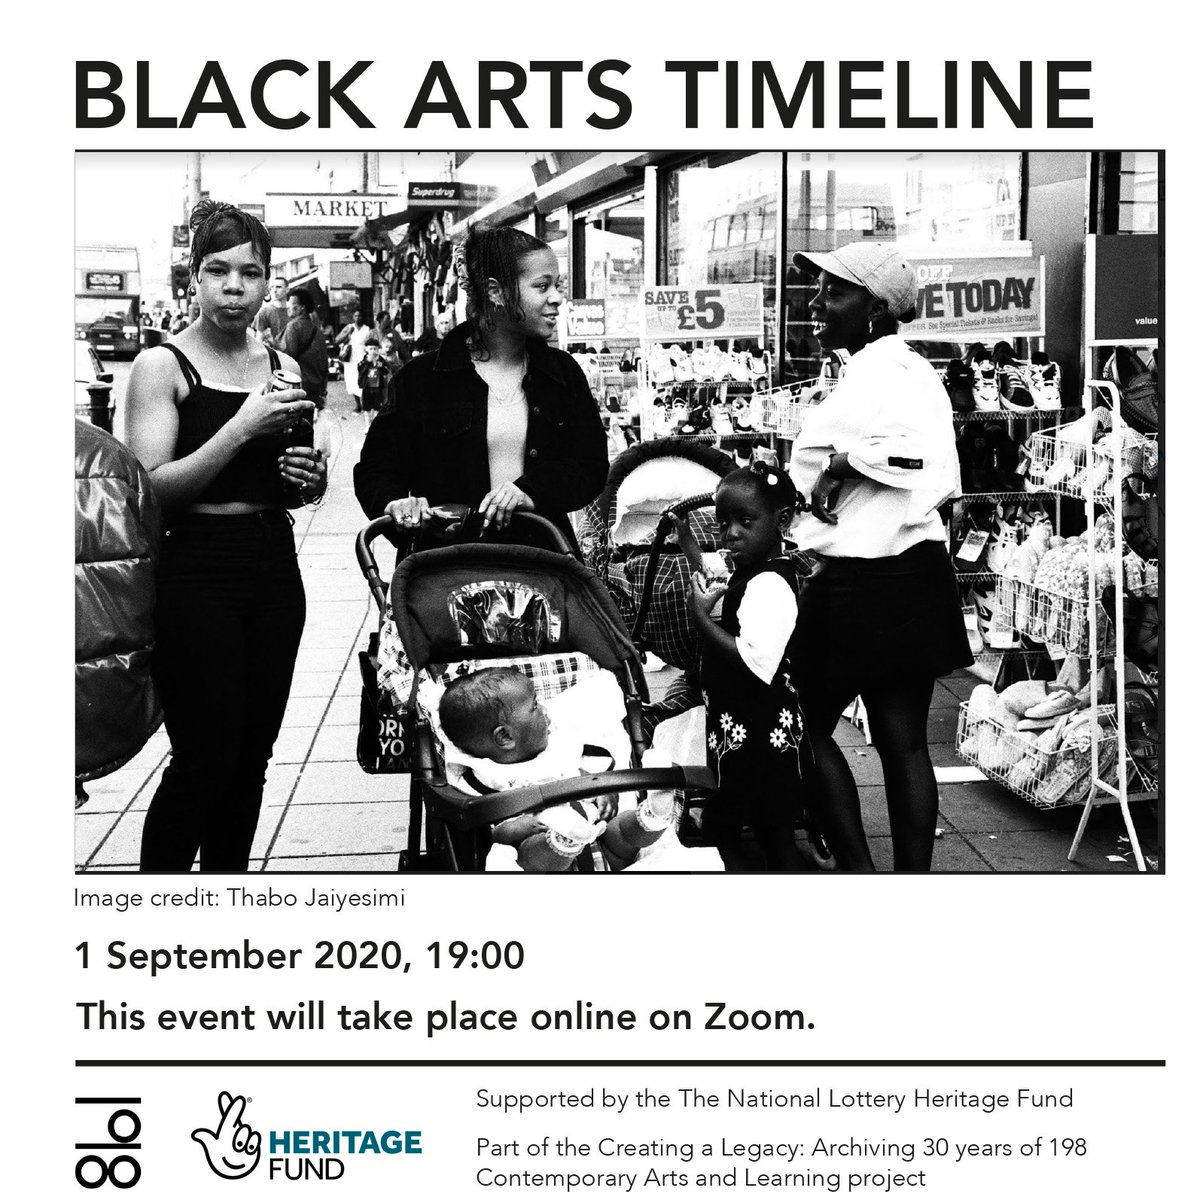 For Lambeth Heritage Festival in September, Rudy Loewe (198's Archive Assistant) will present Black Arts Timeline. The presentation highlights a lineage of Black artists who in part, have made 198 what it is today. Register online:  https://t.co/g1woWzFgxG https://t.co/myNvLglrnI